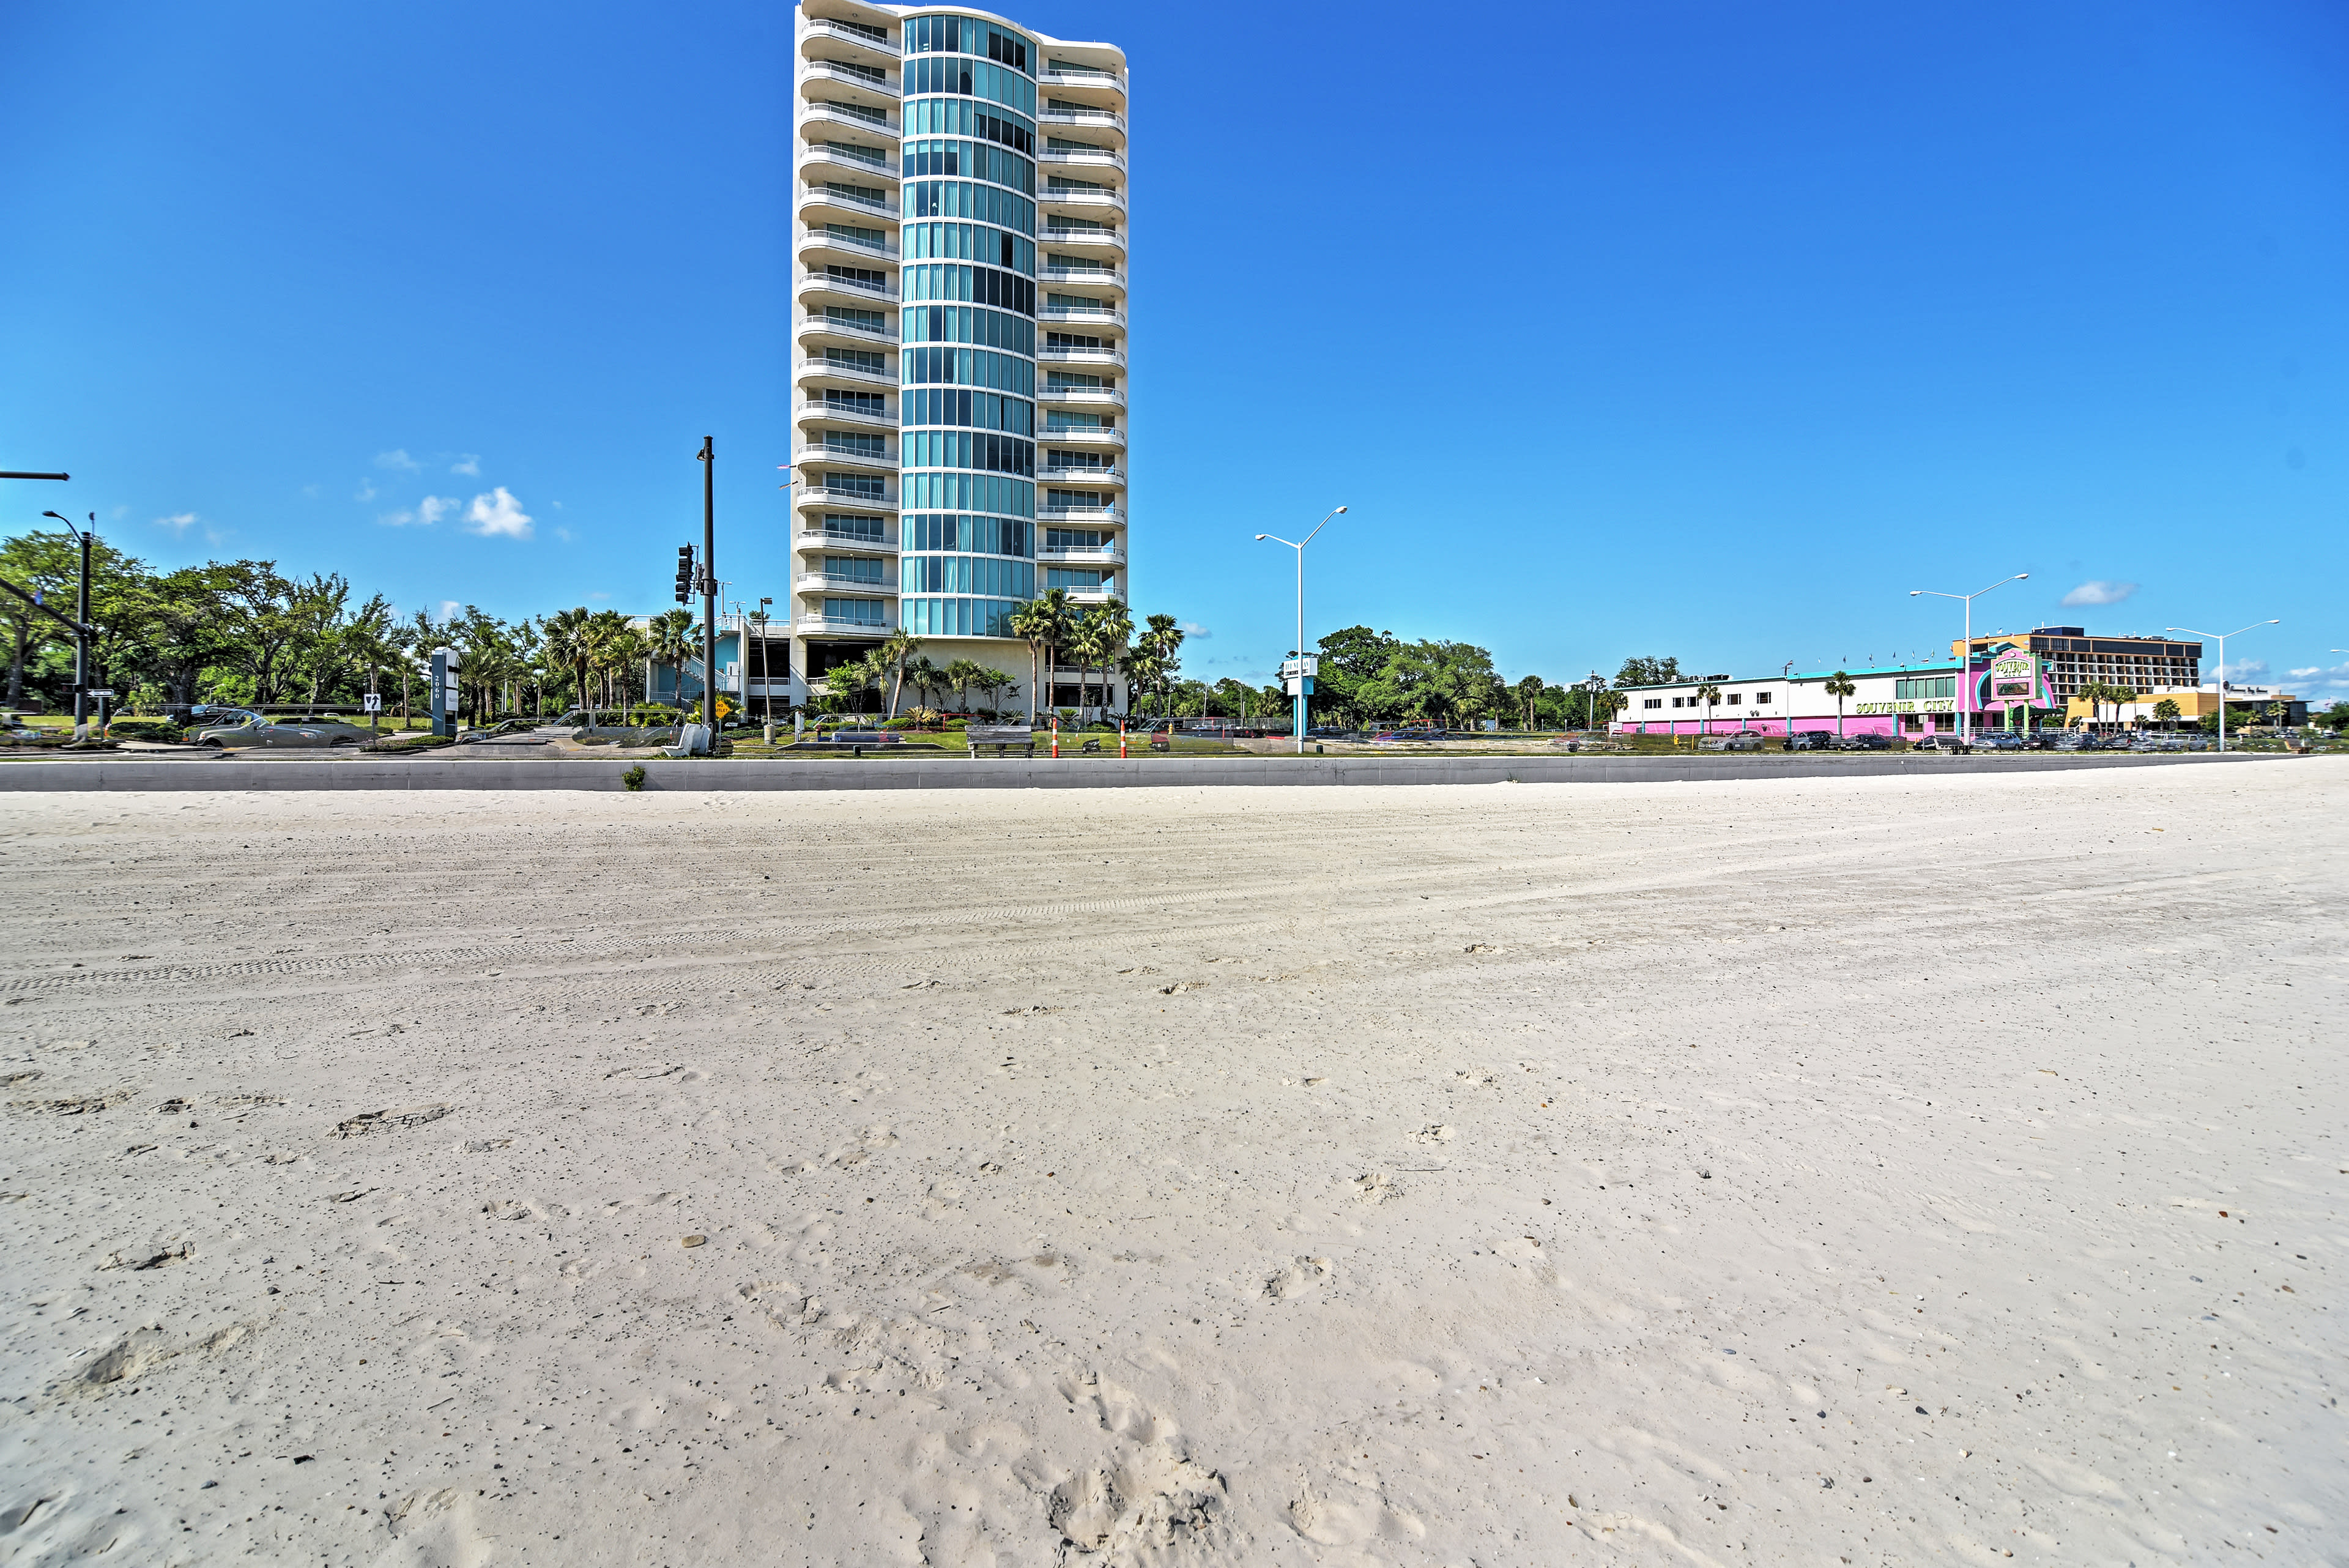 Enjoy the best of Biloxi when you stay at this Ocean Club vacation rental condo!